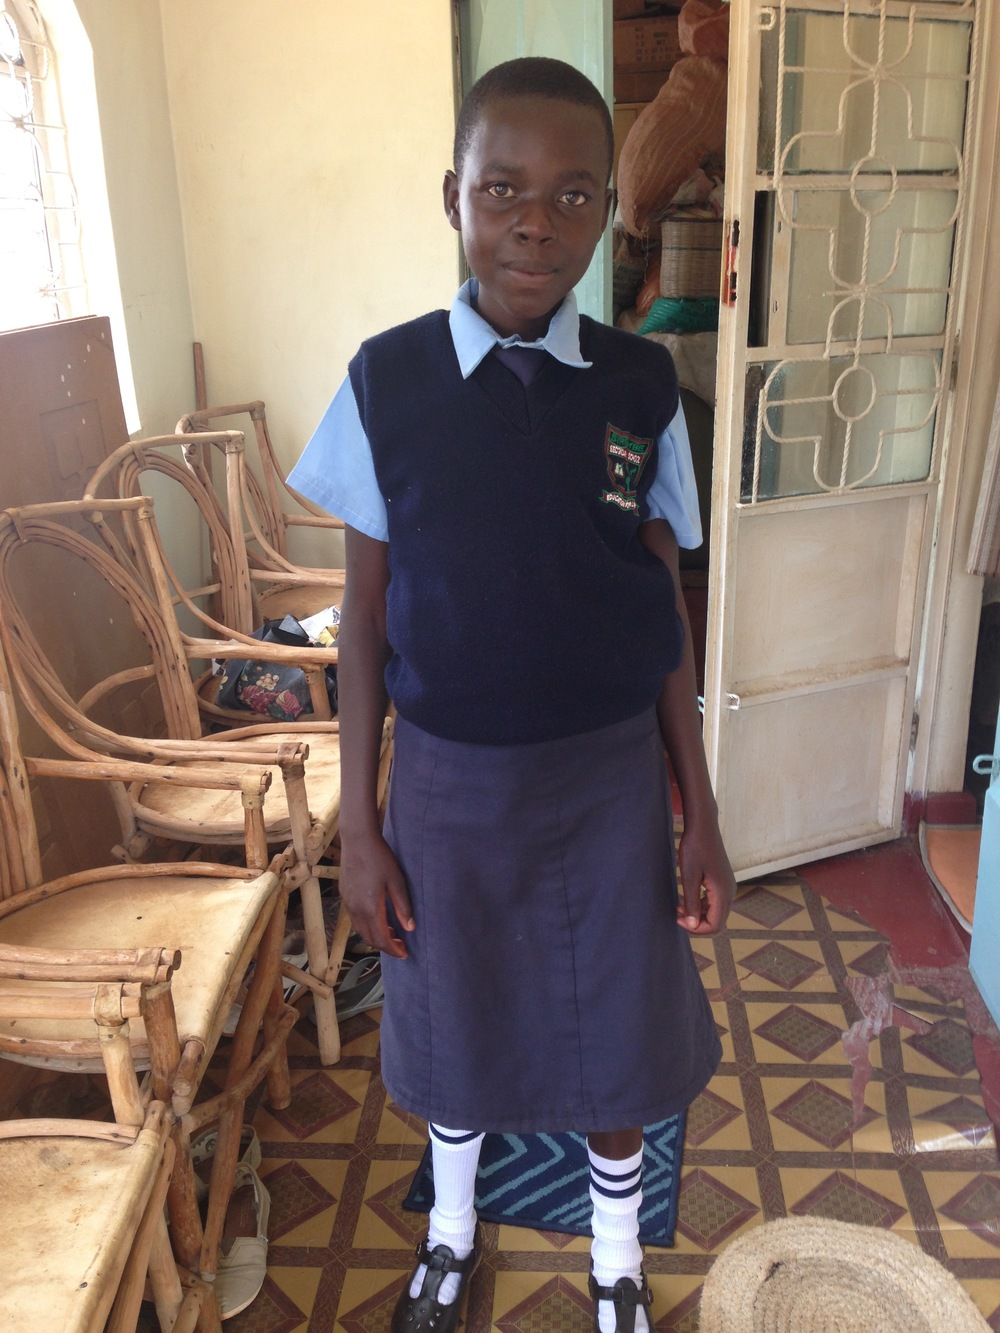 Mercy was one of our Outreach Girls and was in 9th grade this year, she was at the top of her class!